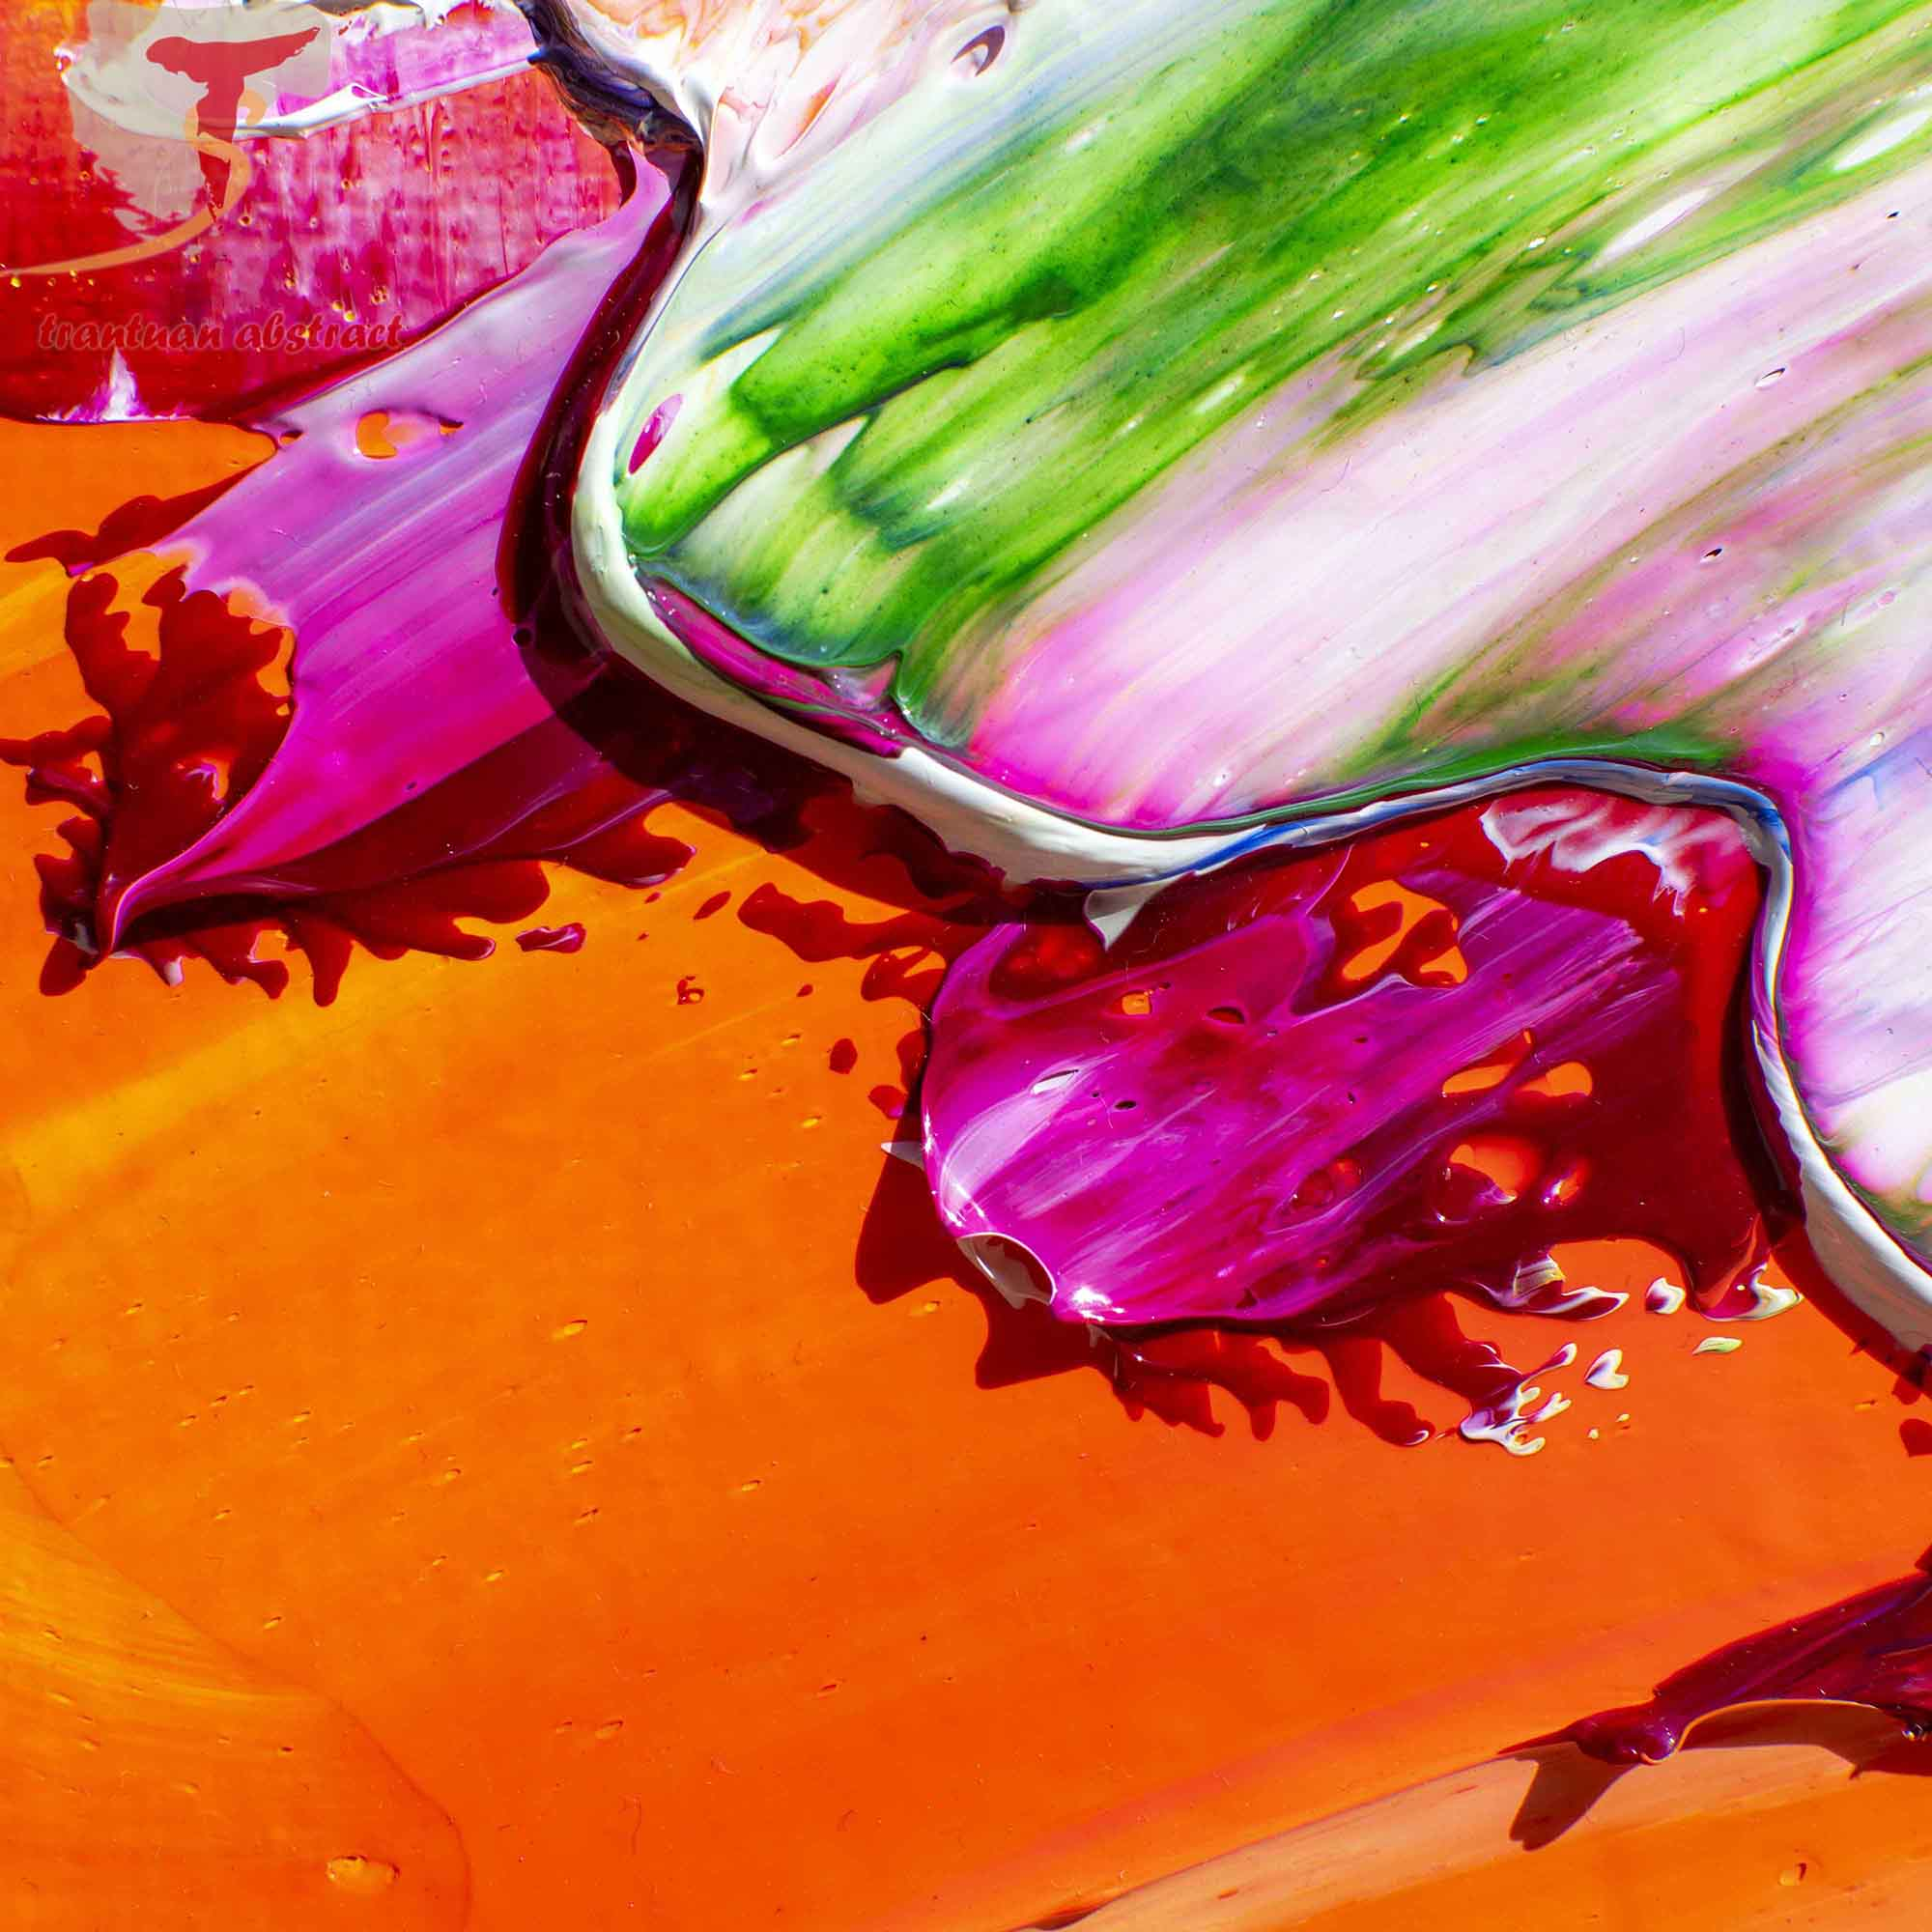 Tran Tuan Abstract Colors of Sunlight 2021 135 x 80 x 5 cm Acrylic on Canvas Painting Detail s (32)